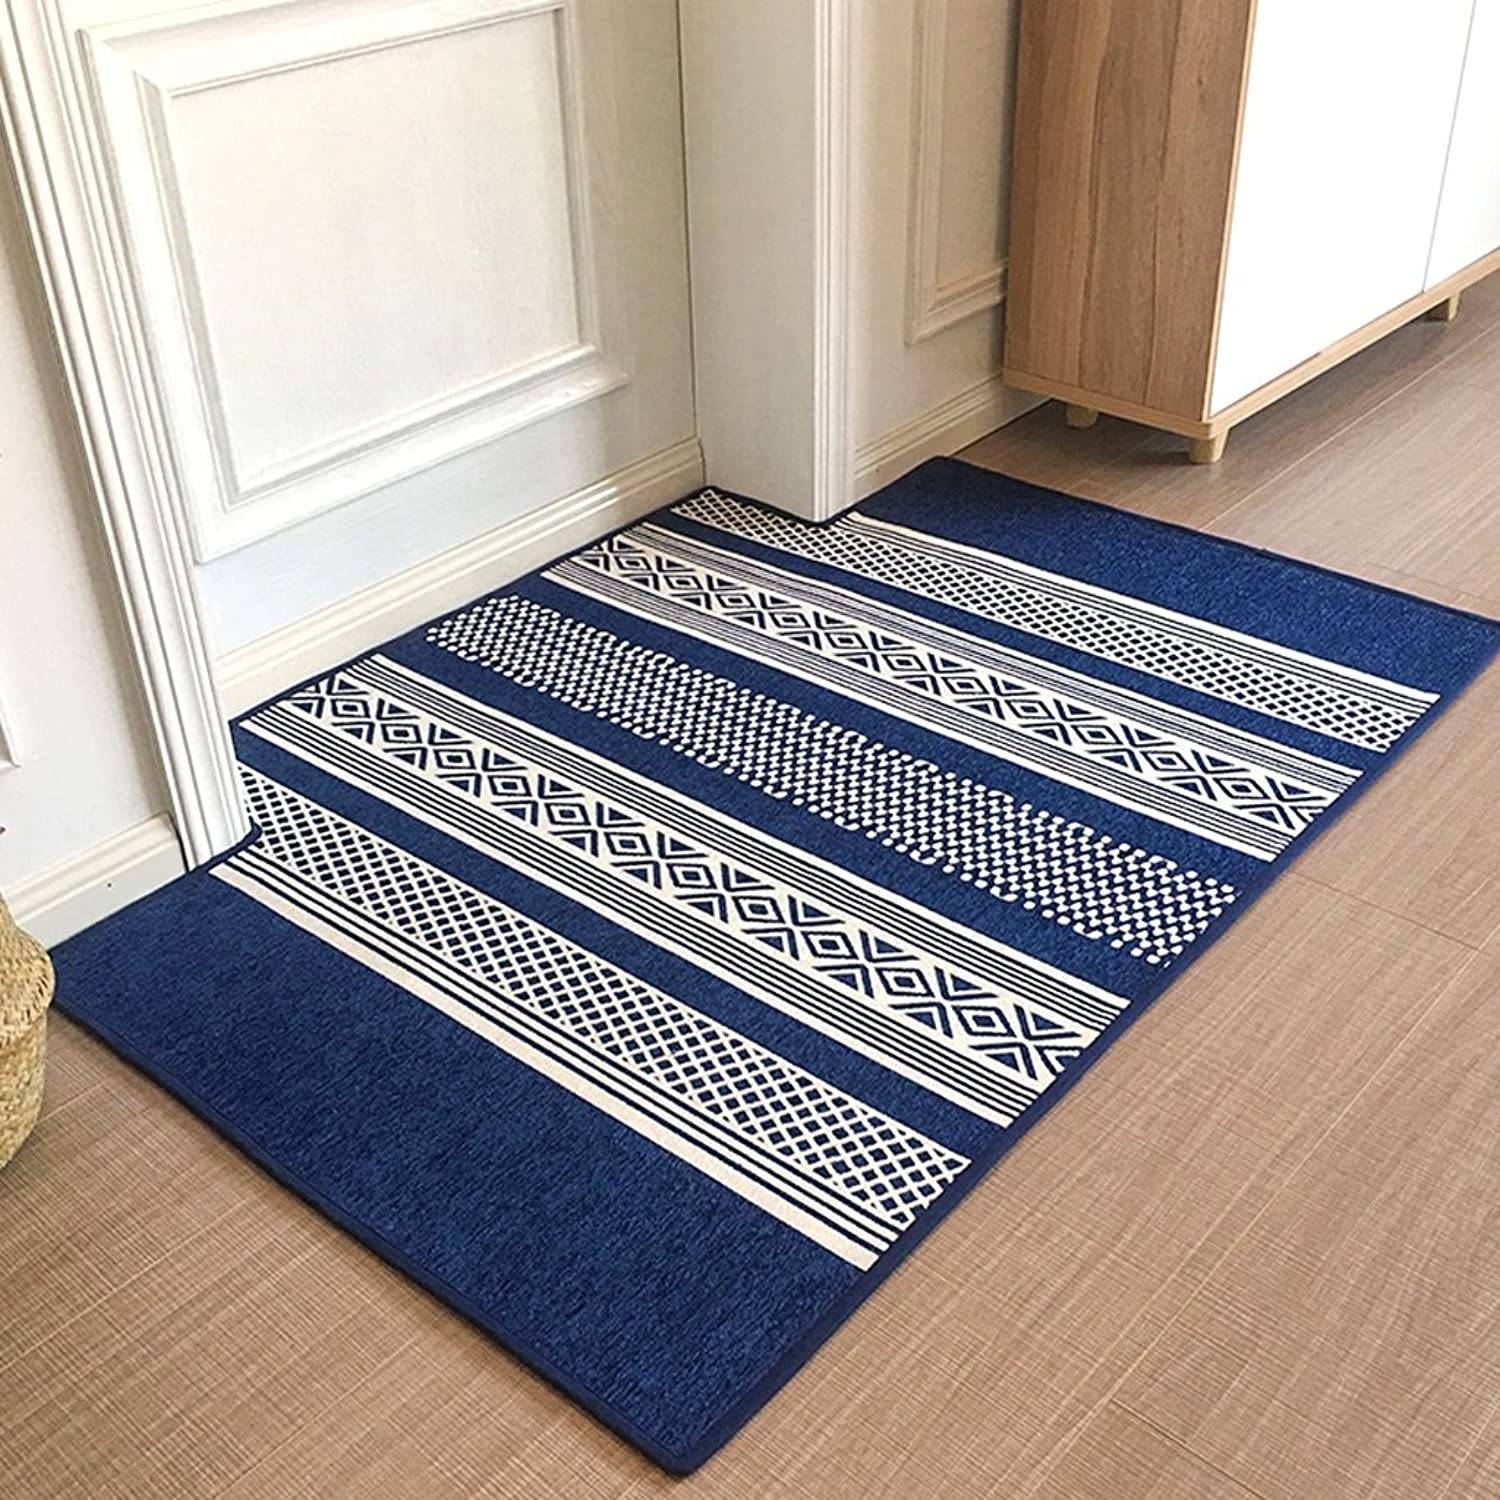 Doormat Door Mats Home Mats Carpets Carpets Beside The Bed Stylish Non-Slip Mats Foot-to-Door Mats Bedroom Doormats Soft and Comfortable (color   bluee, Size   80  120 cm)